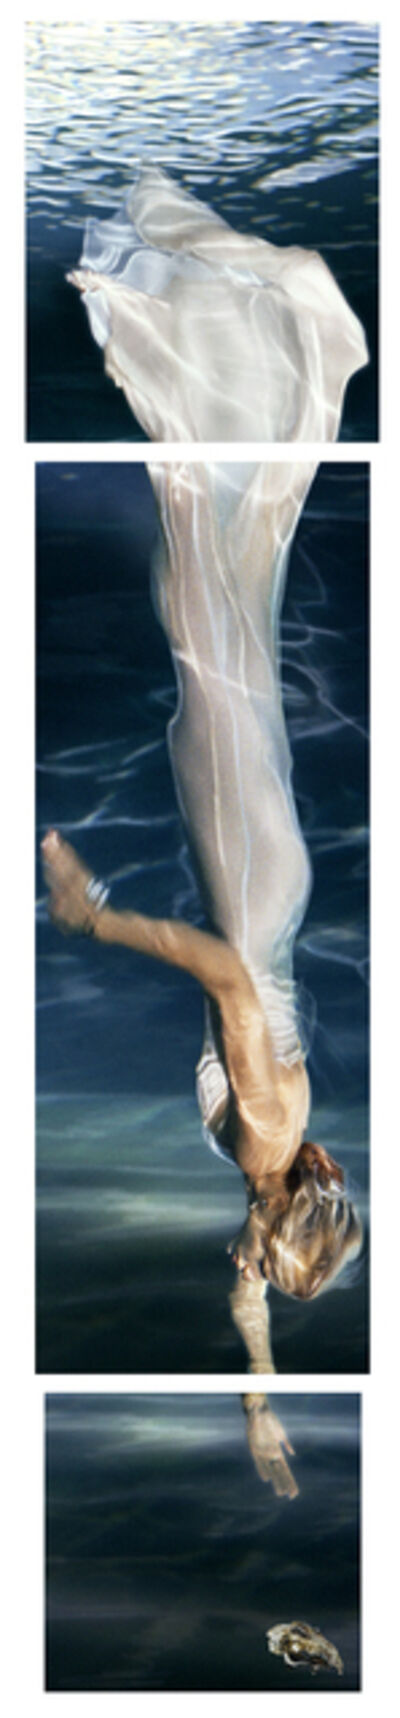 Barbara Cole, 'Pearl Diver (Tryptic)', 2002